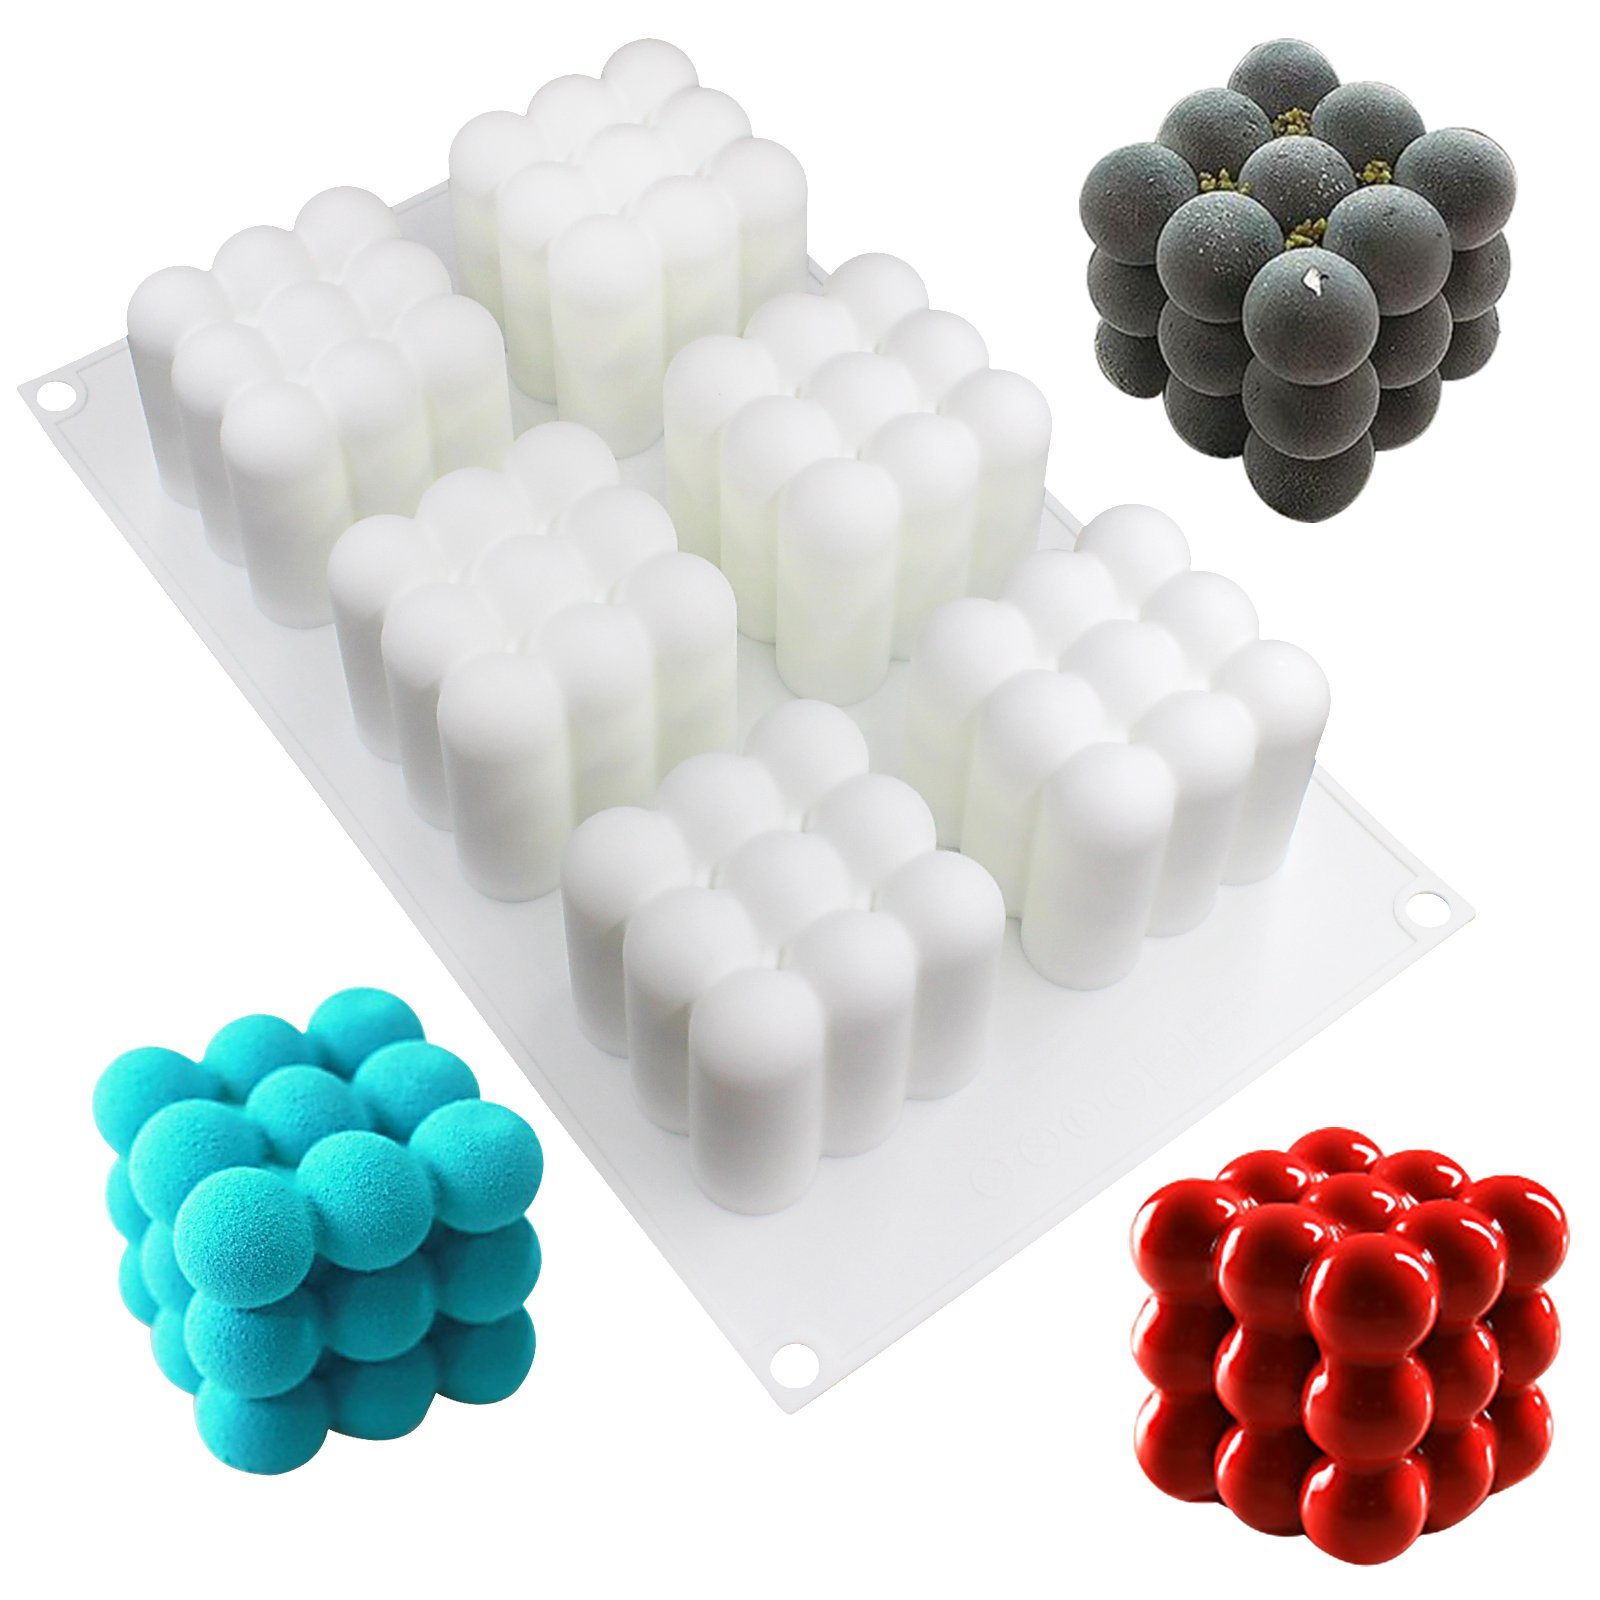 Funshowcase 6 Cavities Magic Cubes Silicone Mold Tray per Cavity 2.4x2.4x2.4inch